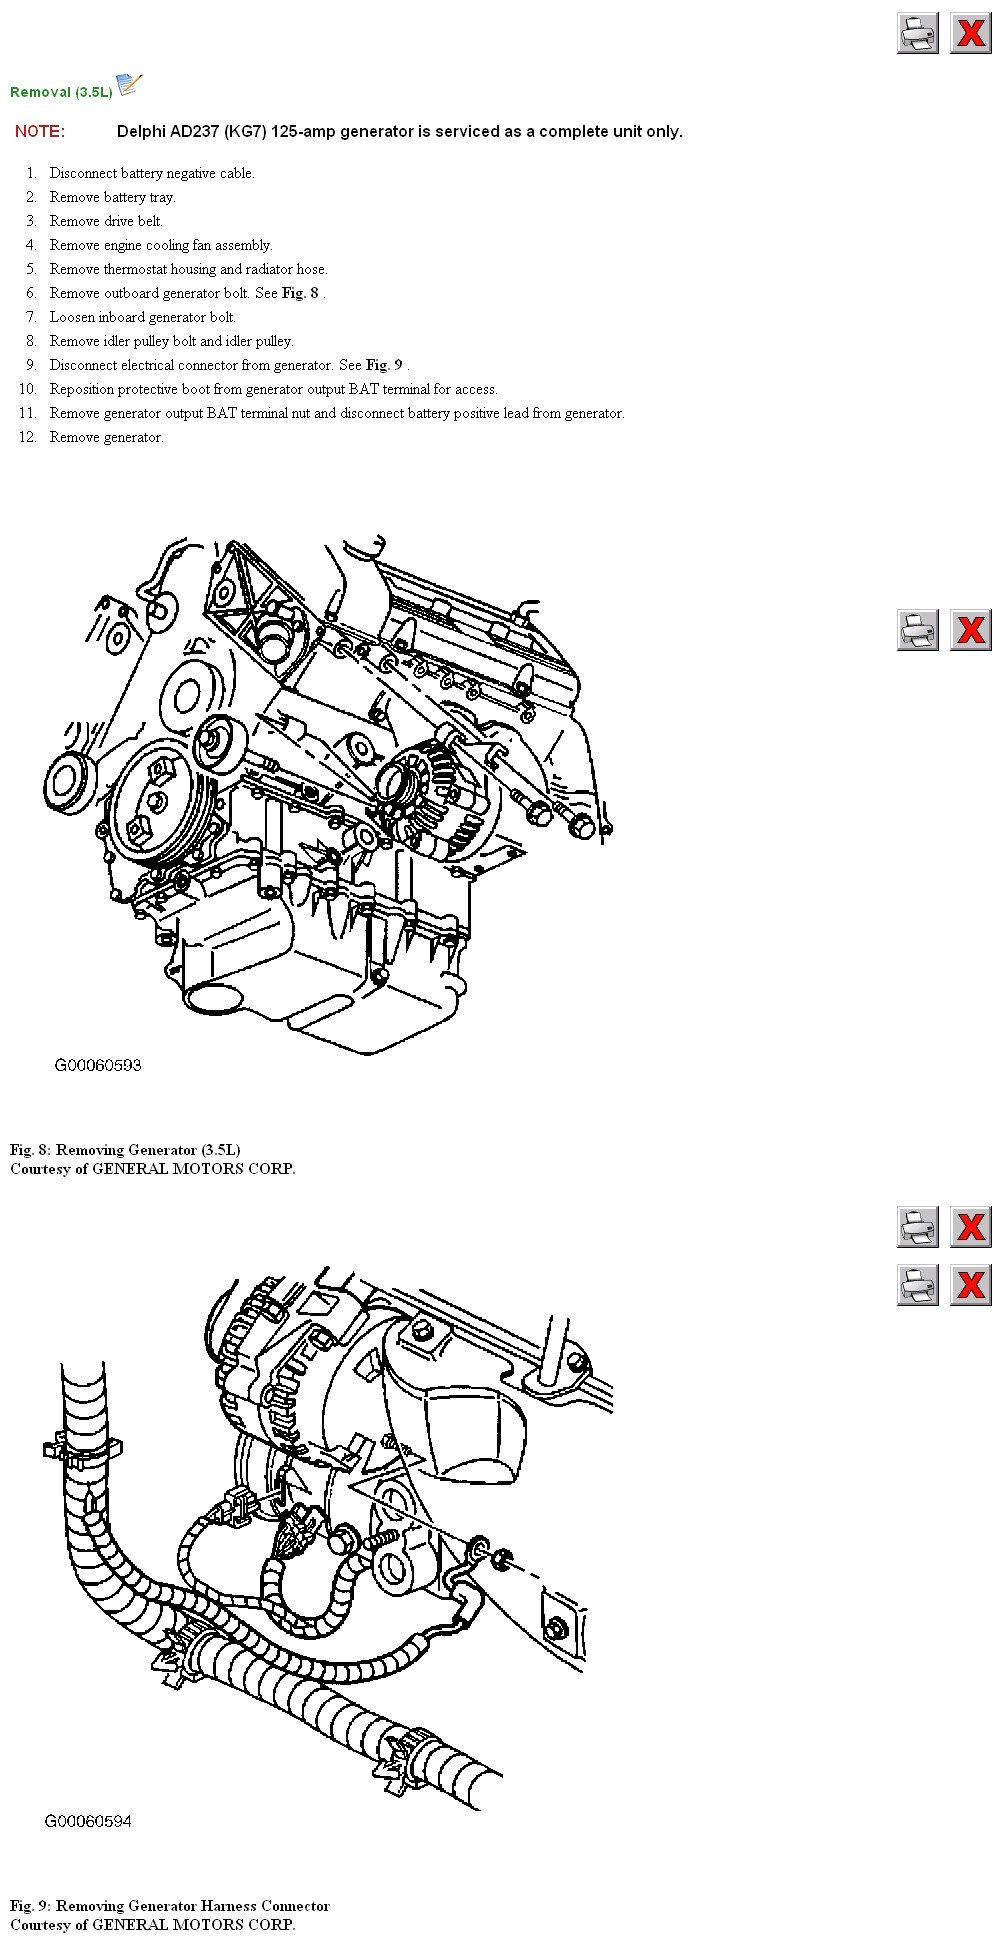 2001 oldsmobile alero 3.4 firing diagram